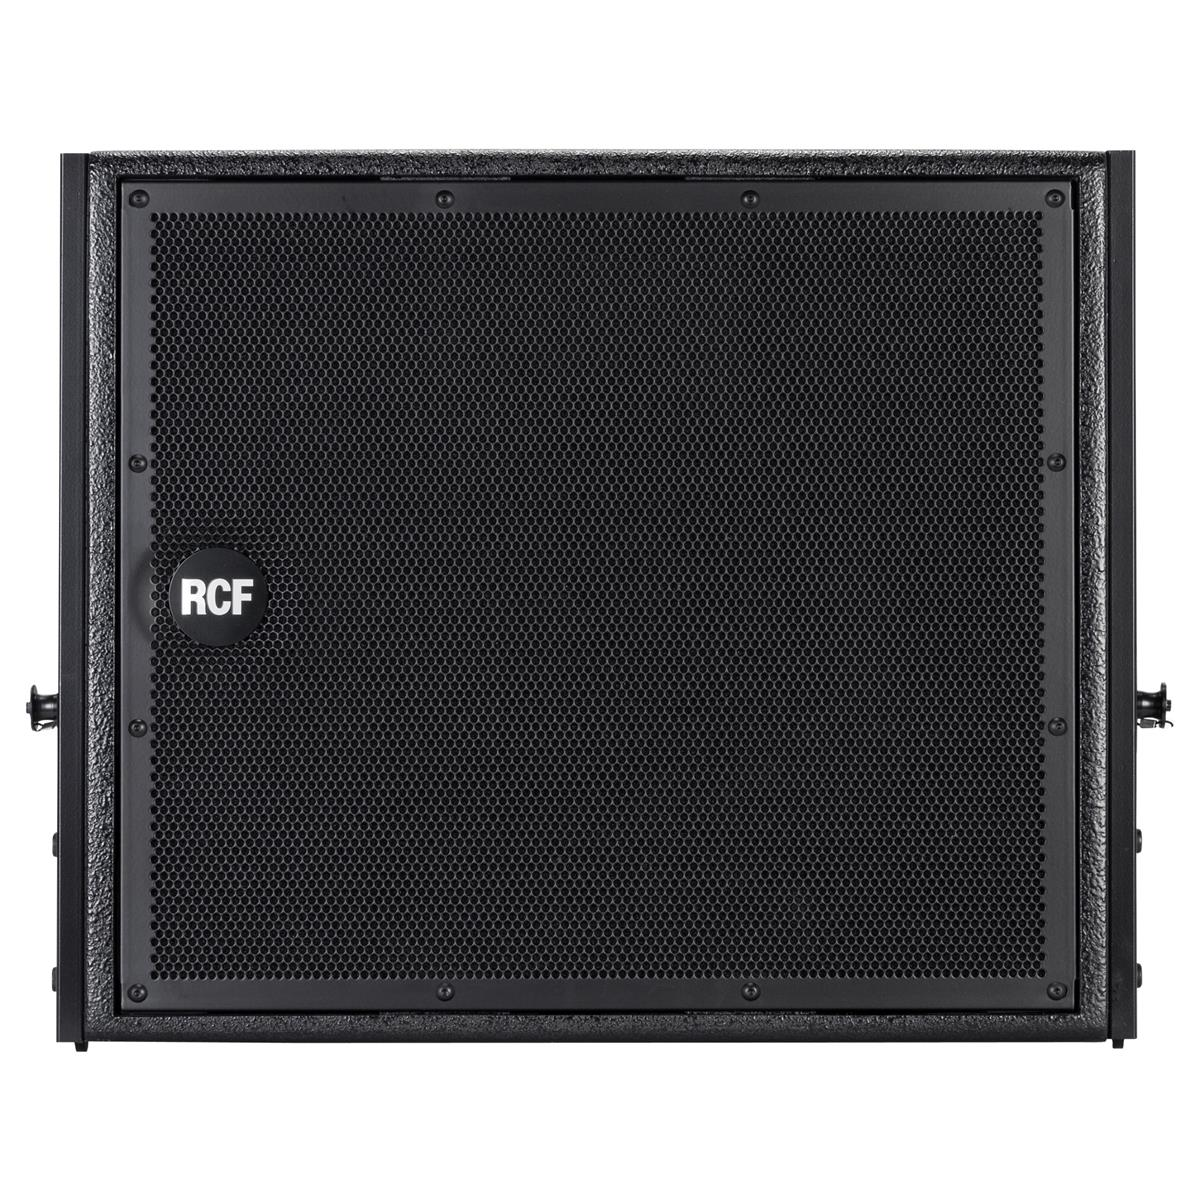 RCF Active line array subwoofer for HDL10, 15in, 1000Wrms, 2